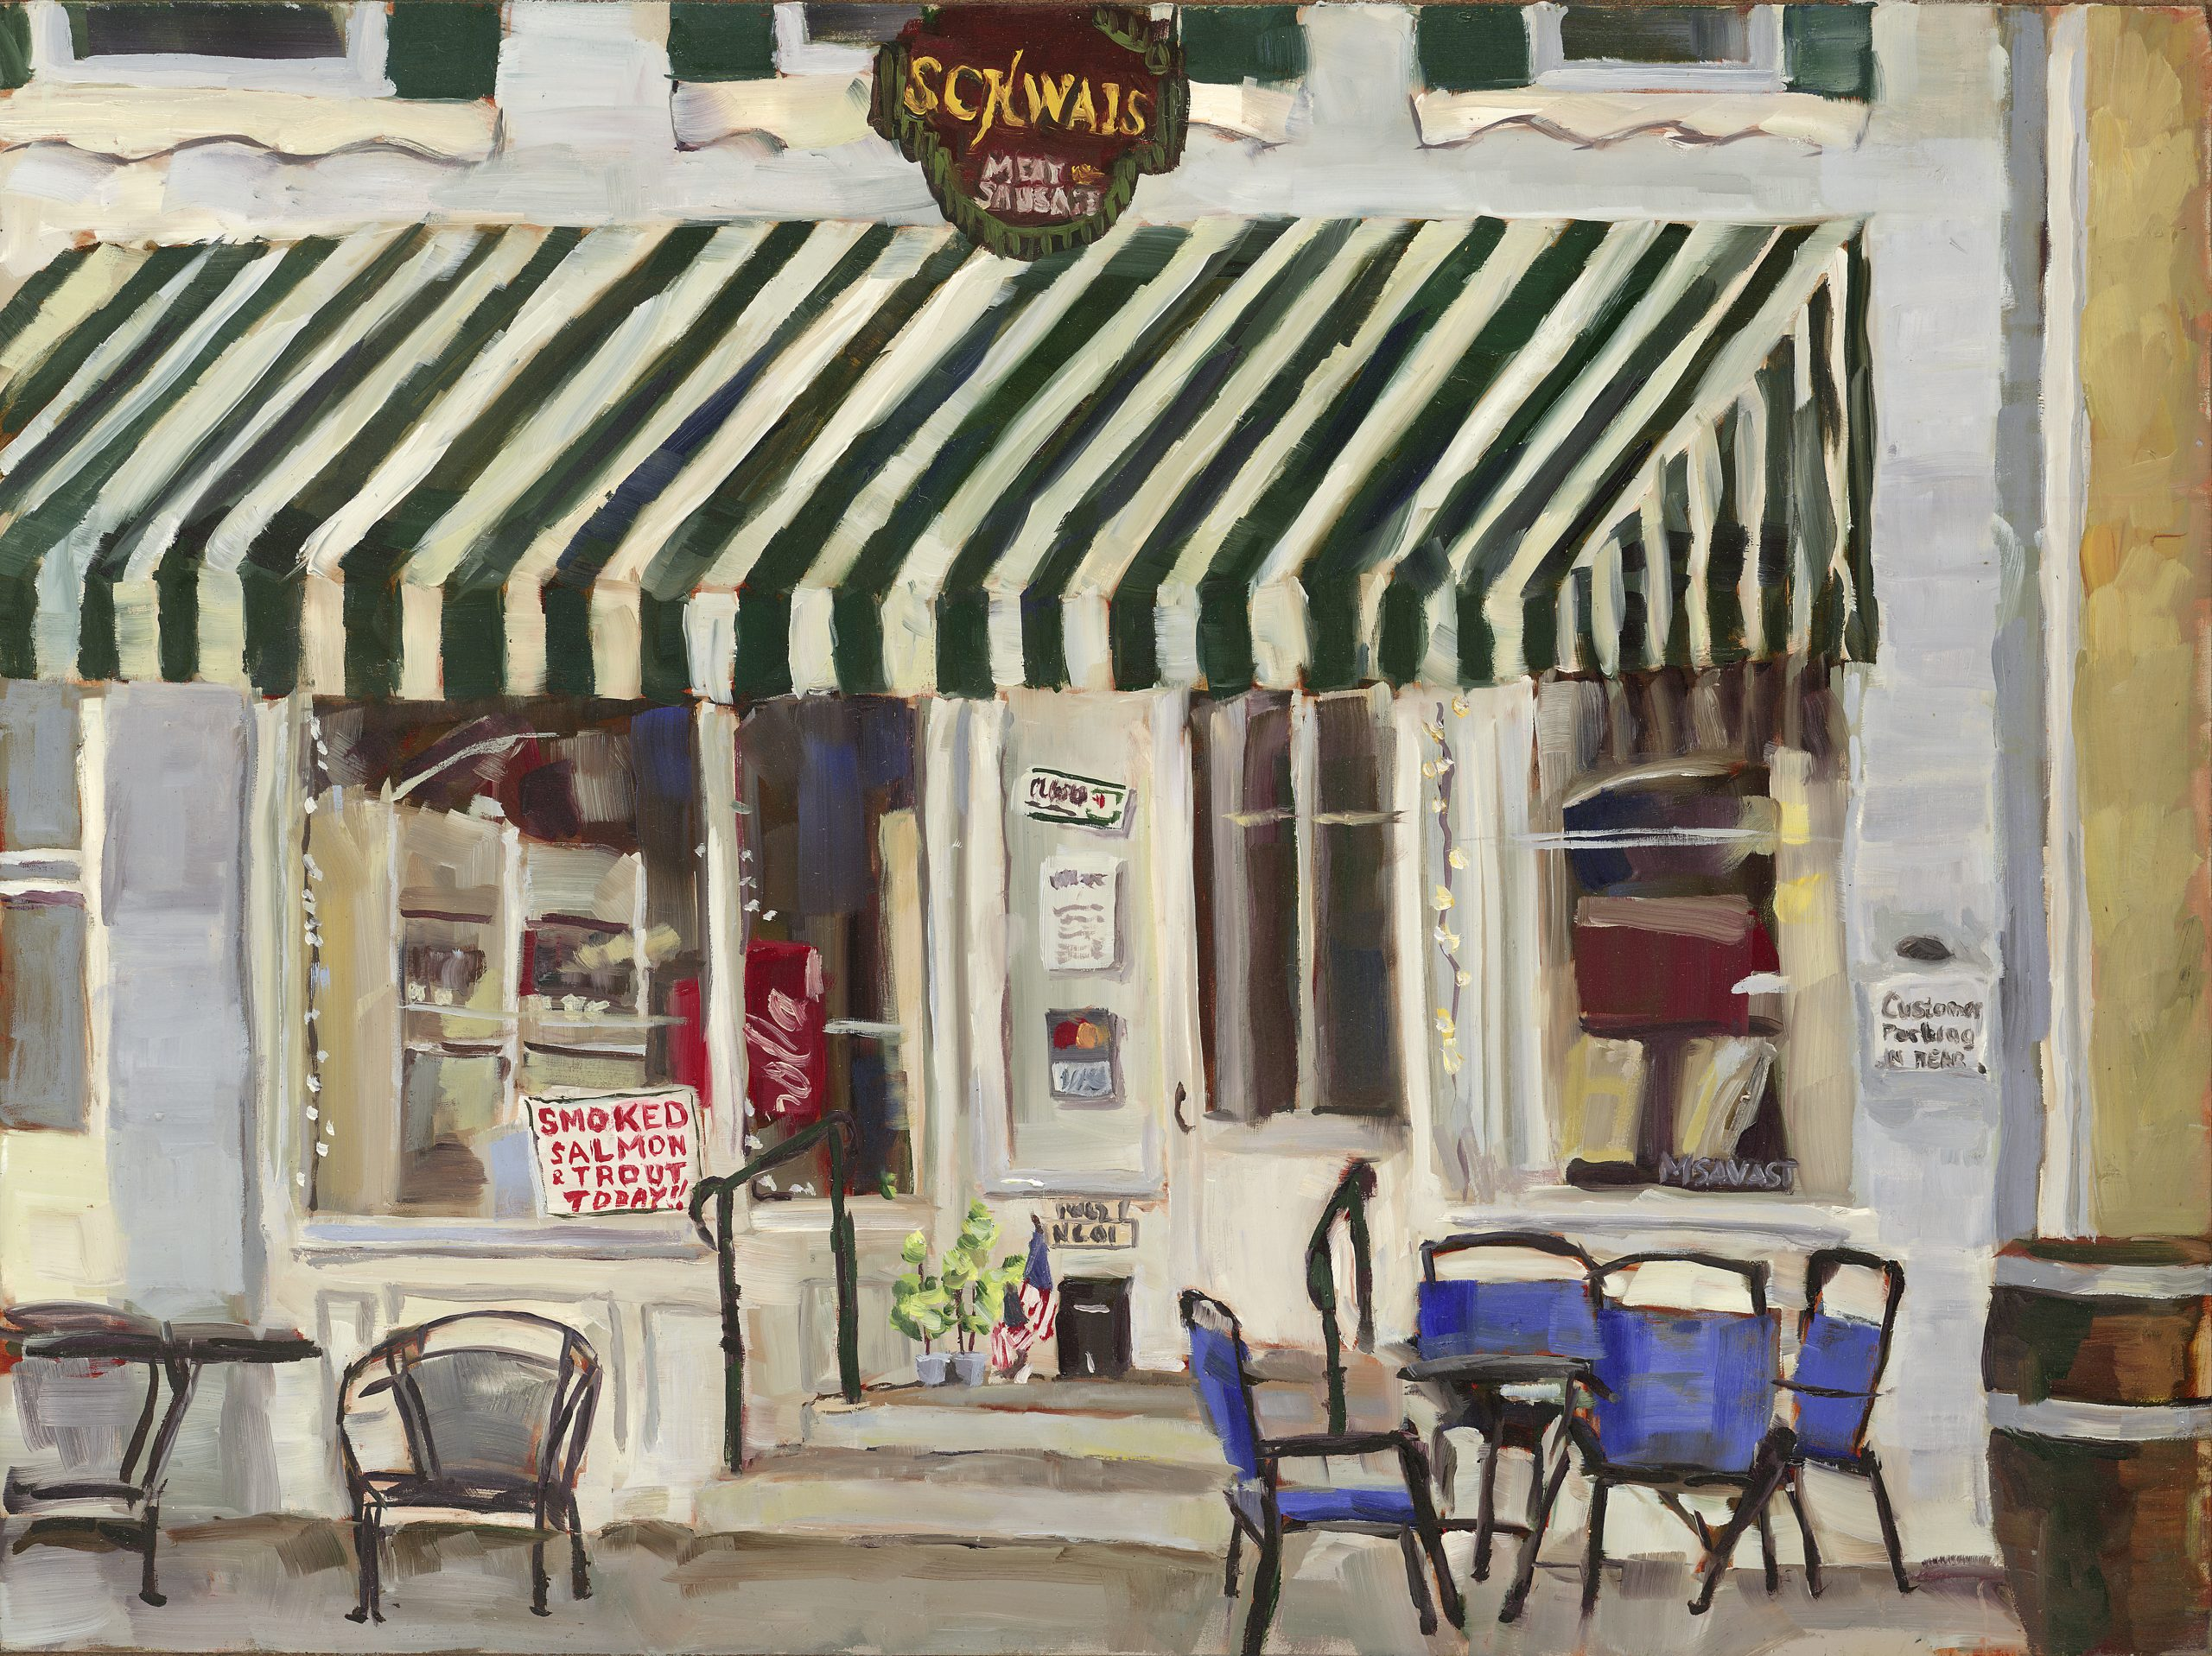 Closing Time, 16x12, Oil - Available (Original or Prints)